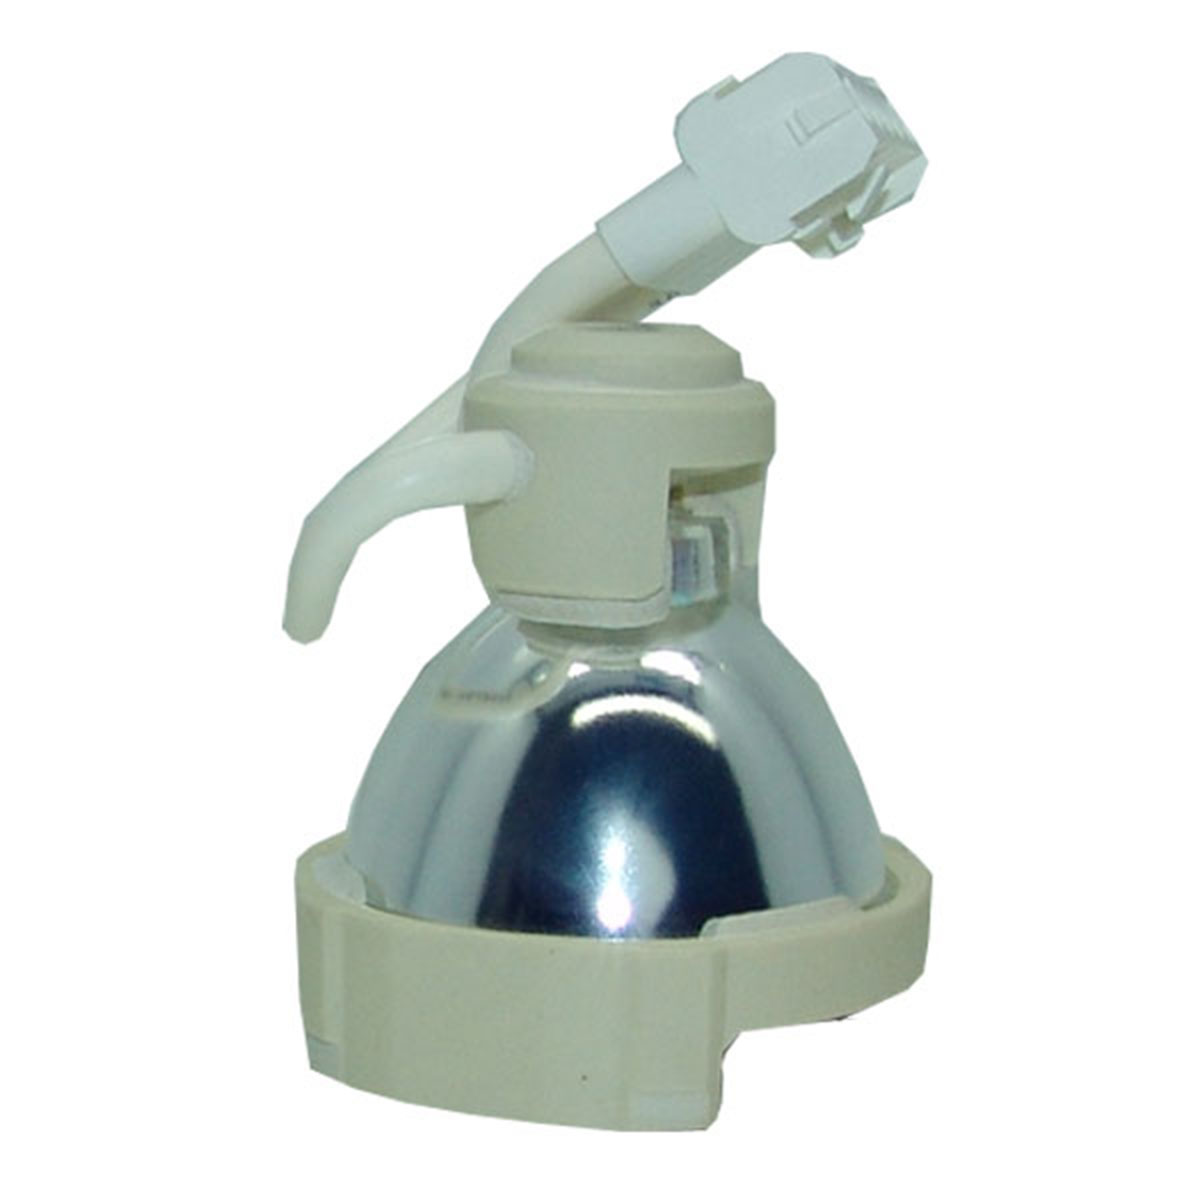 Lutema Platinum Bulb for Liesegang ddv 820 Projector (Lamp Only) - image 2 of 5